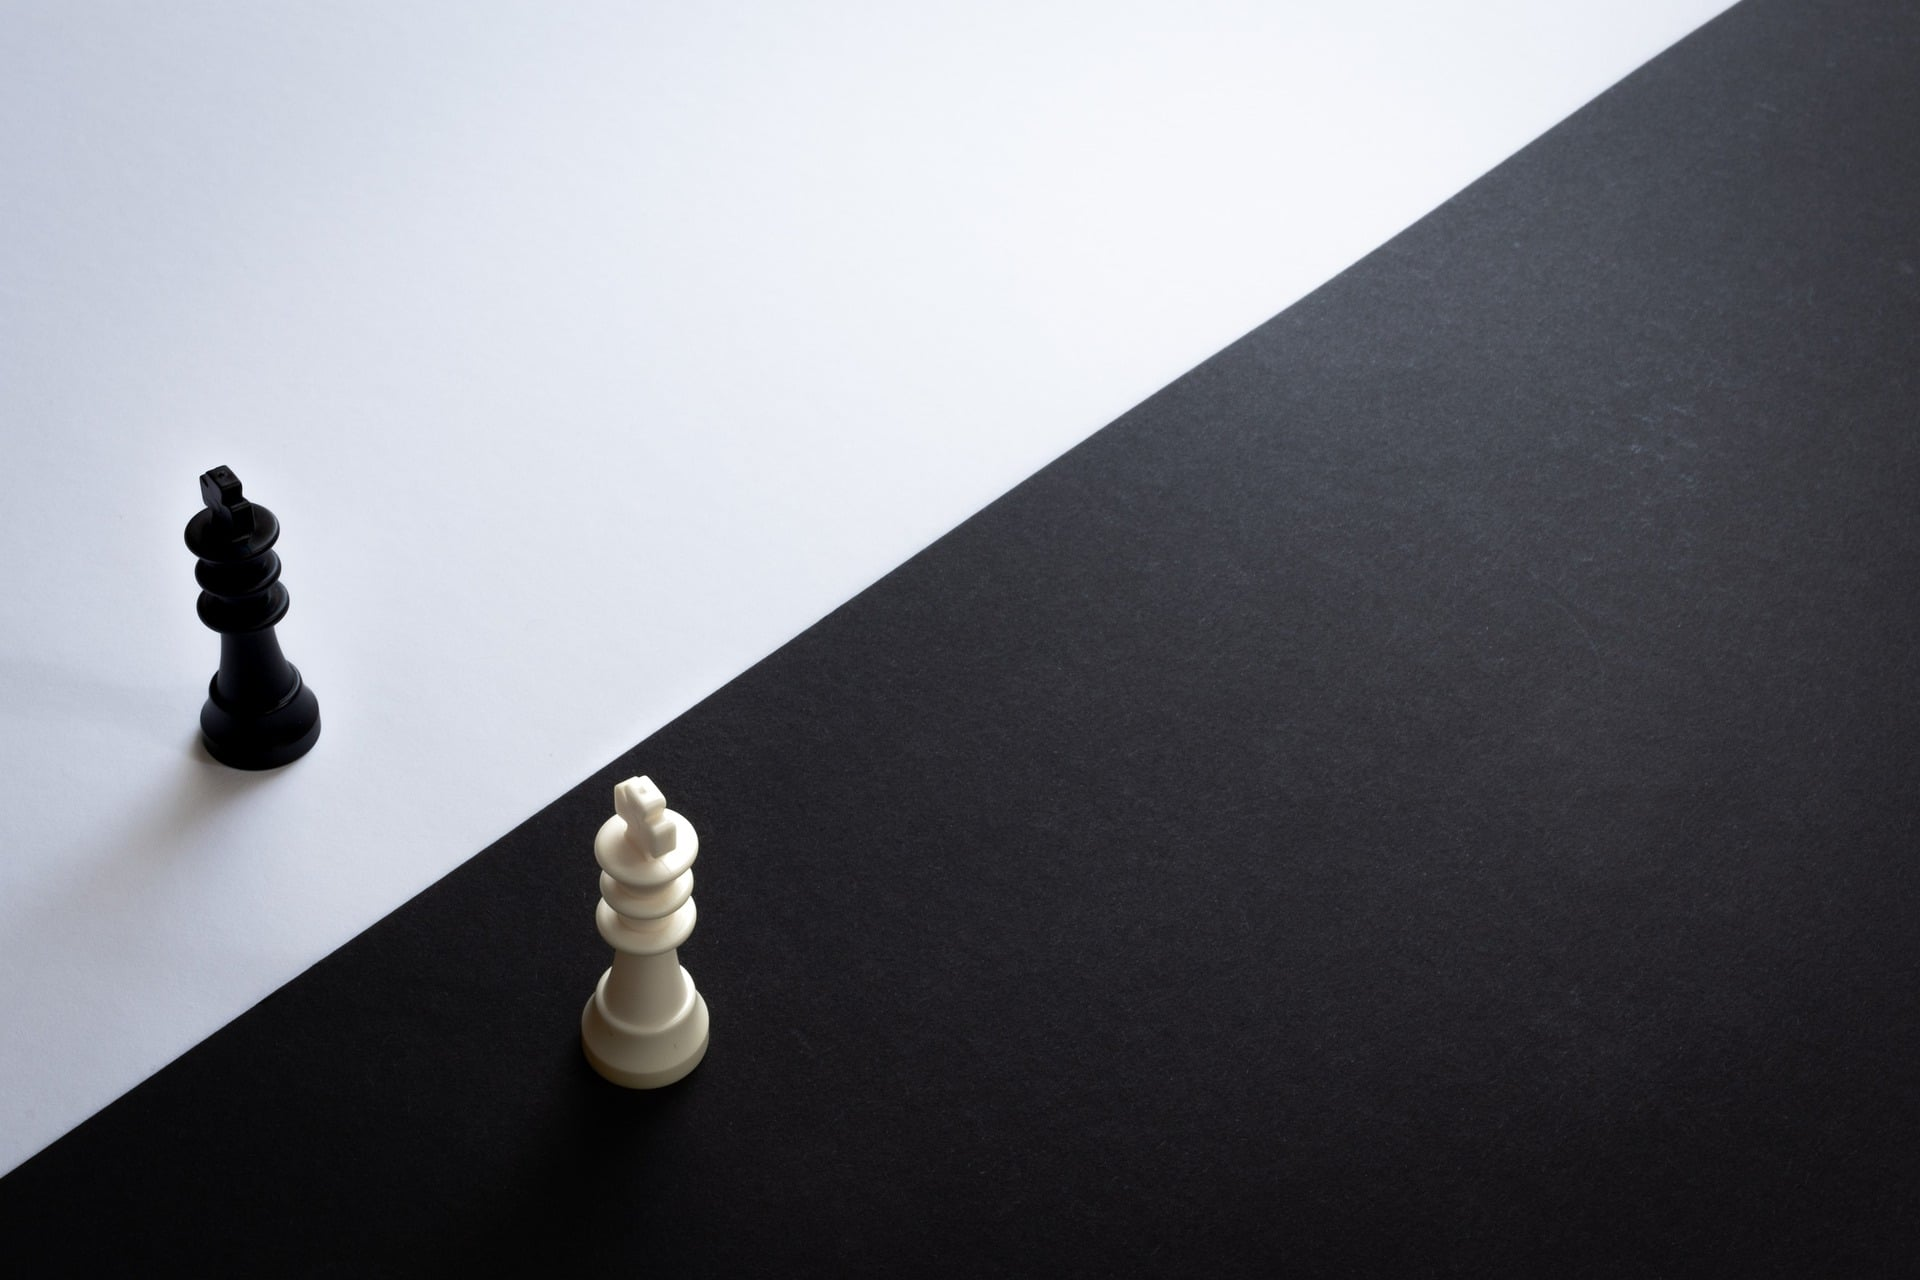 Chess pieces on contrast background